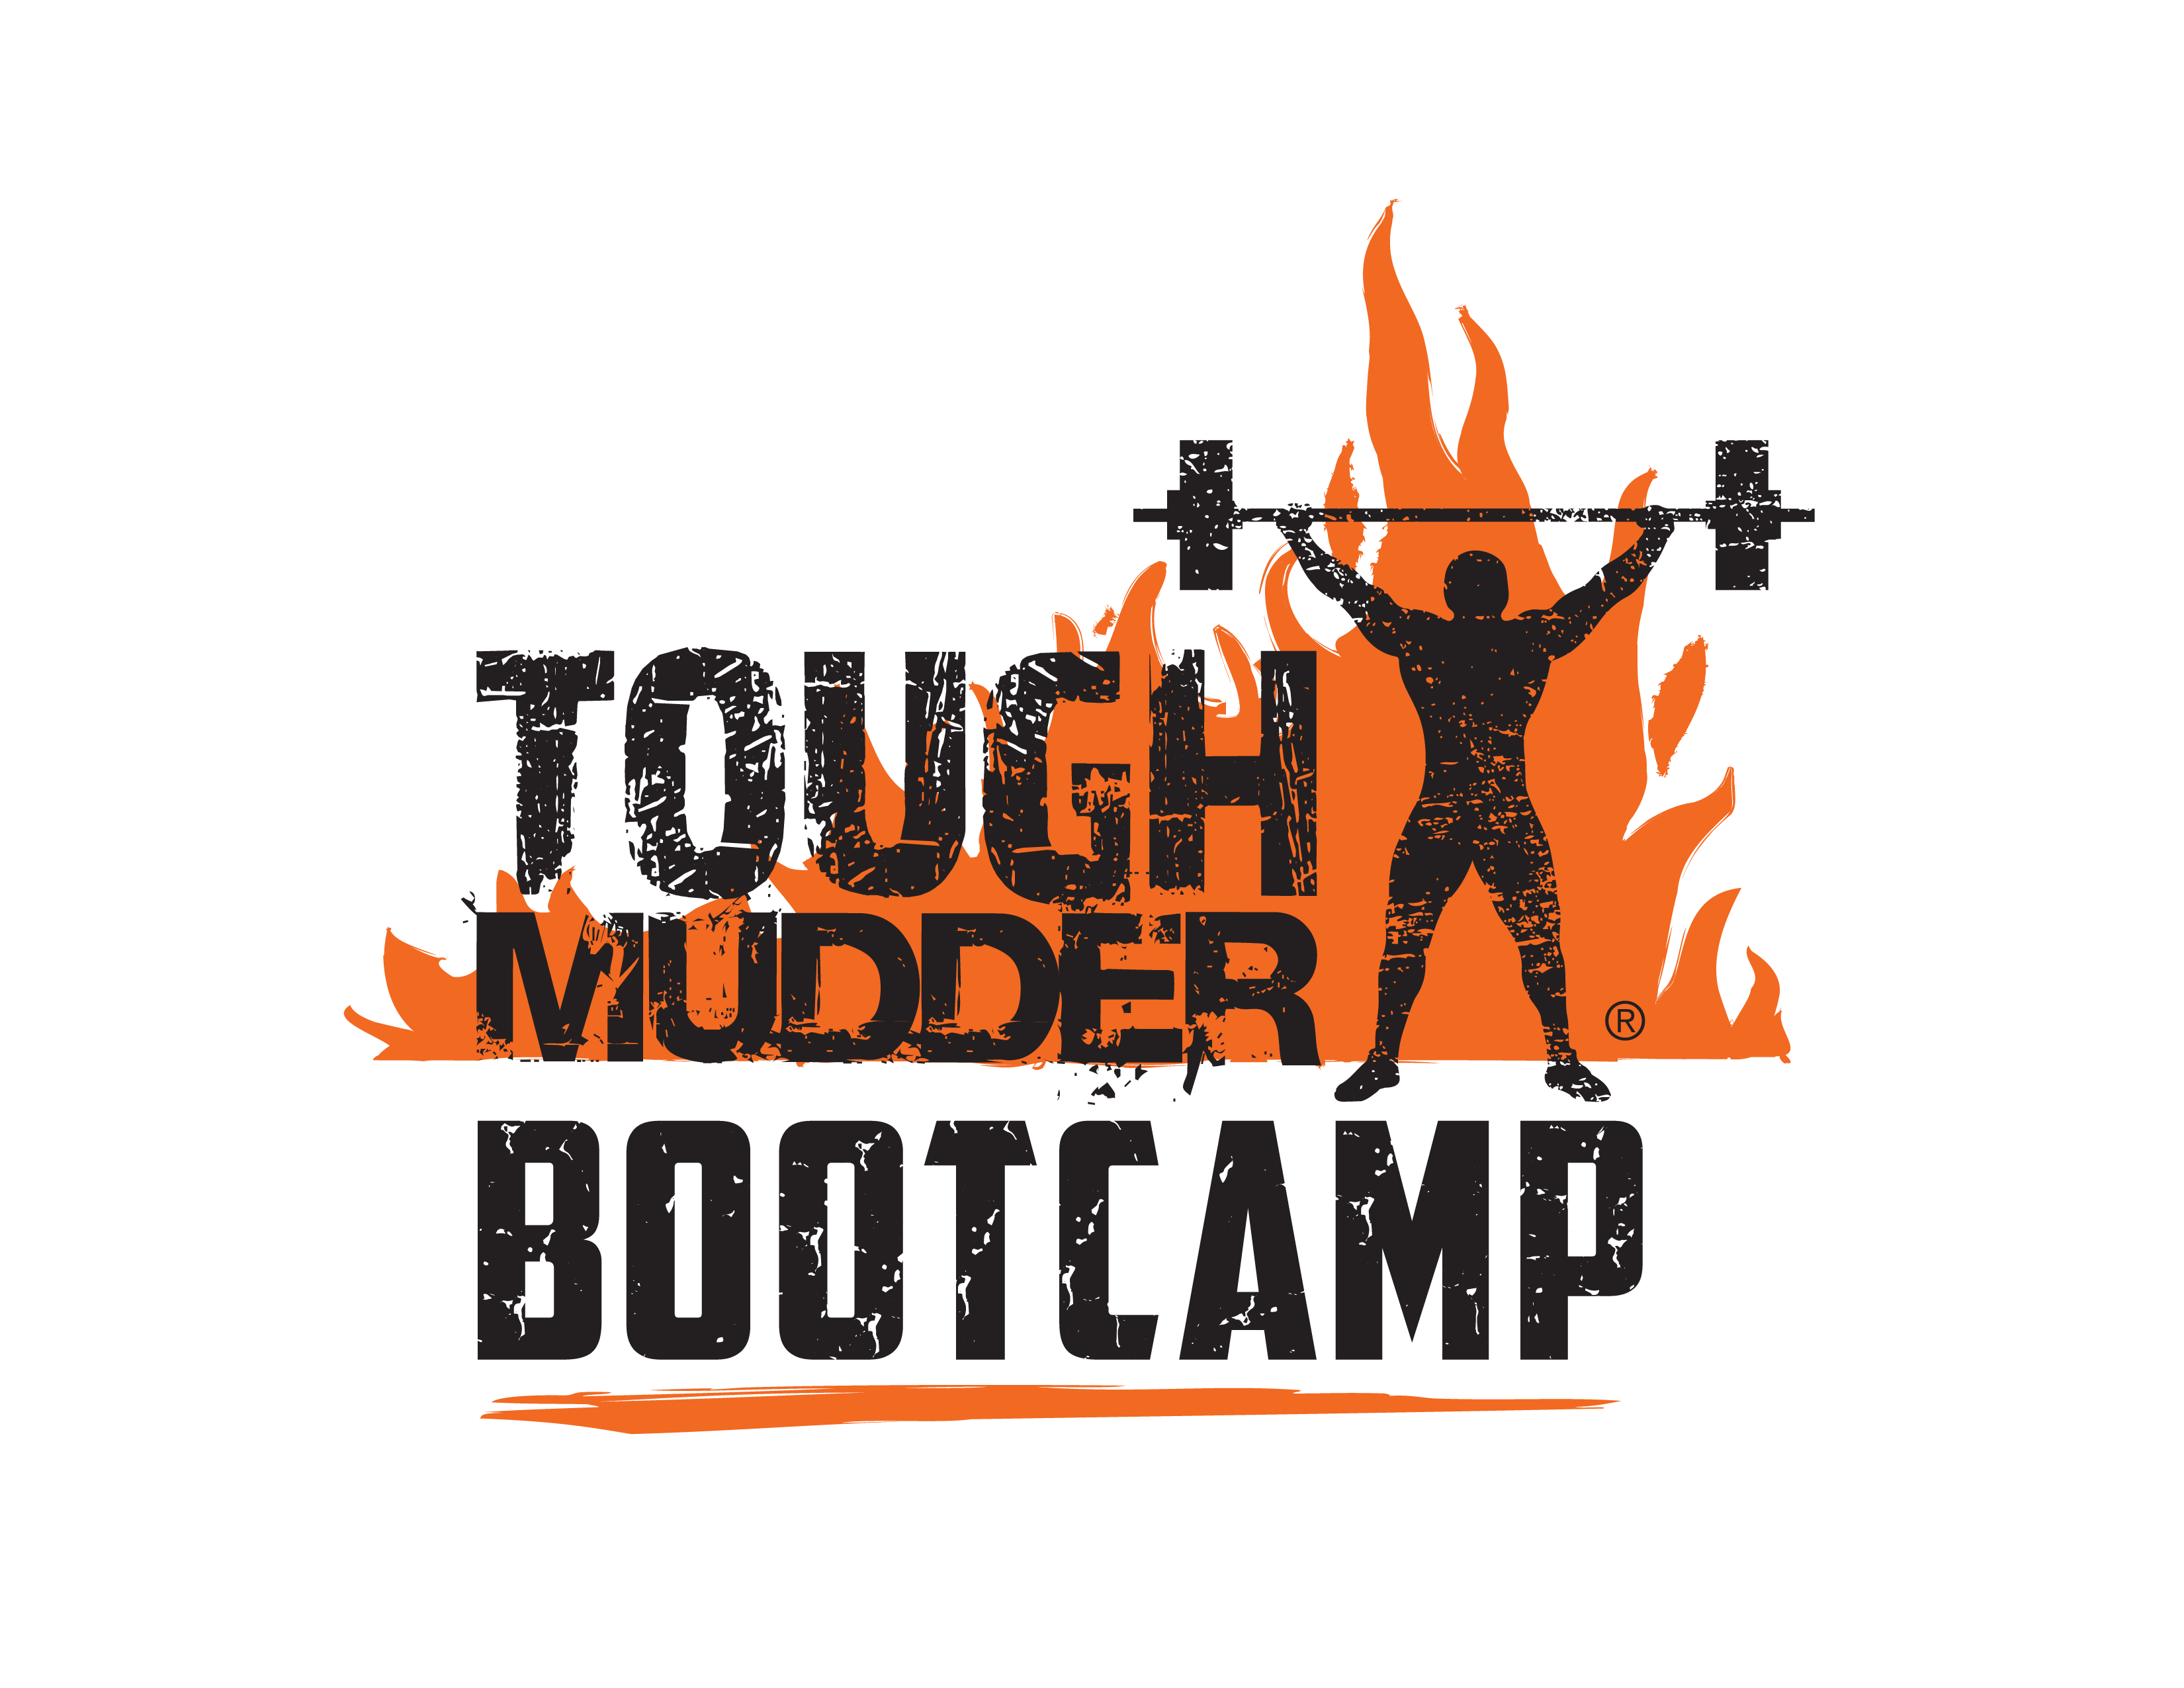 Tough Mudder Bootcamp